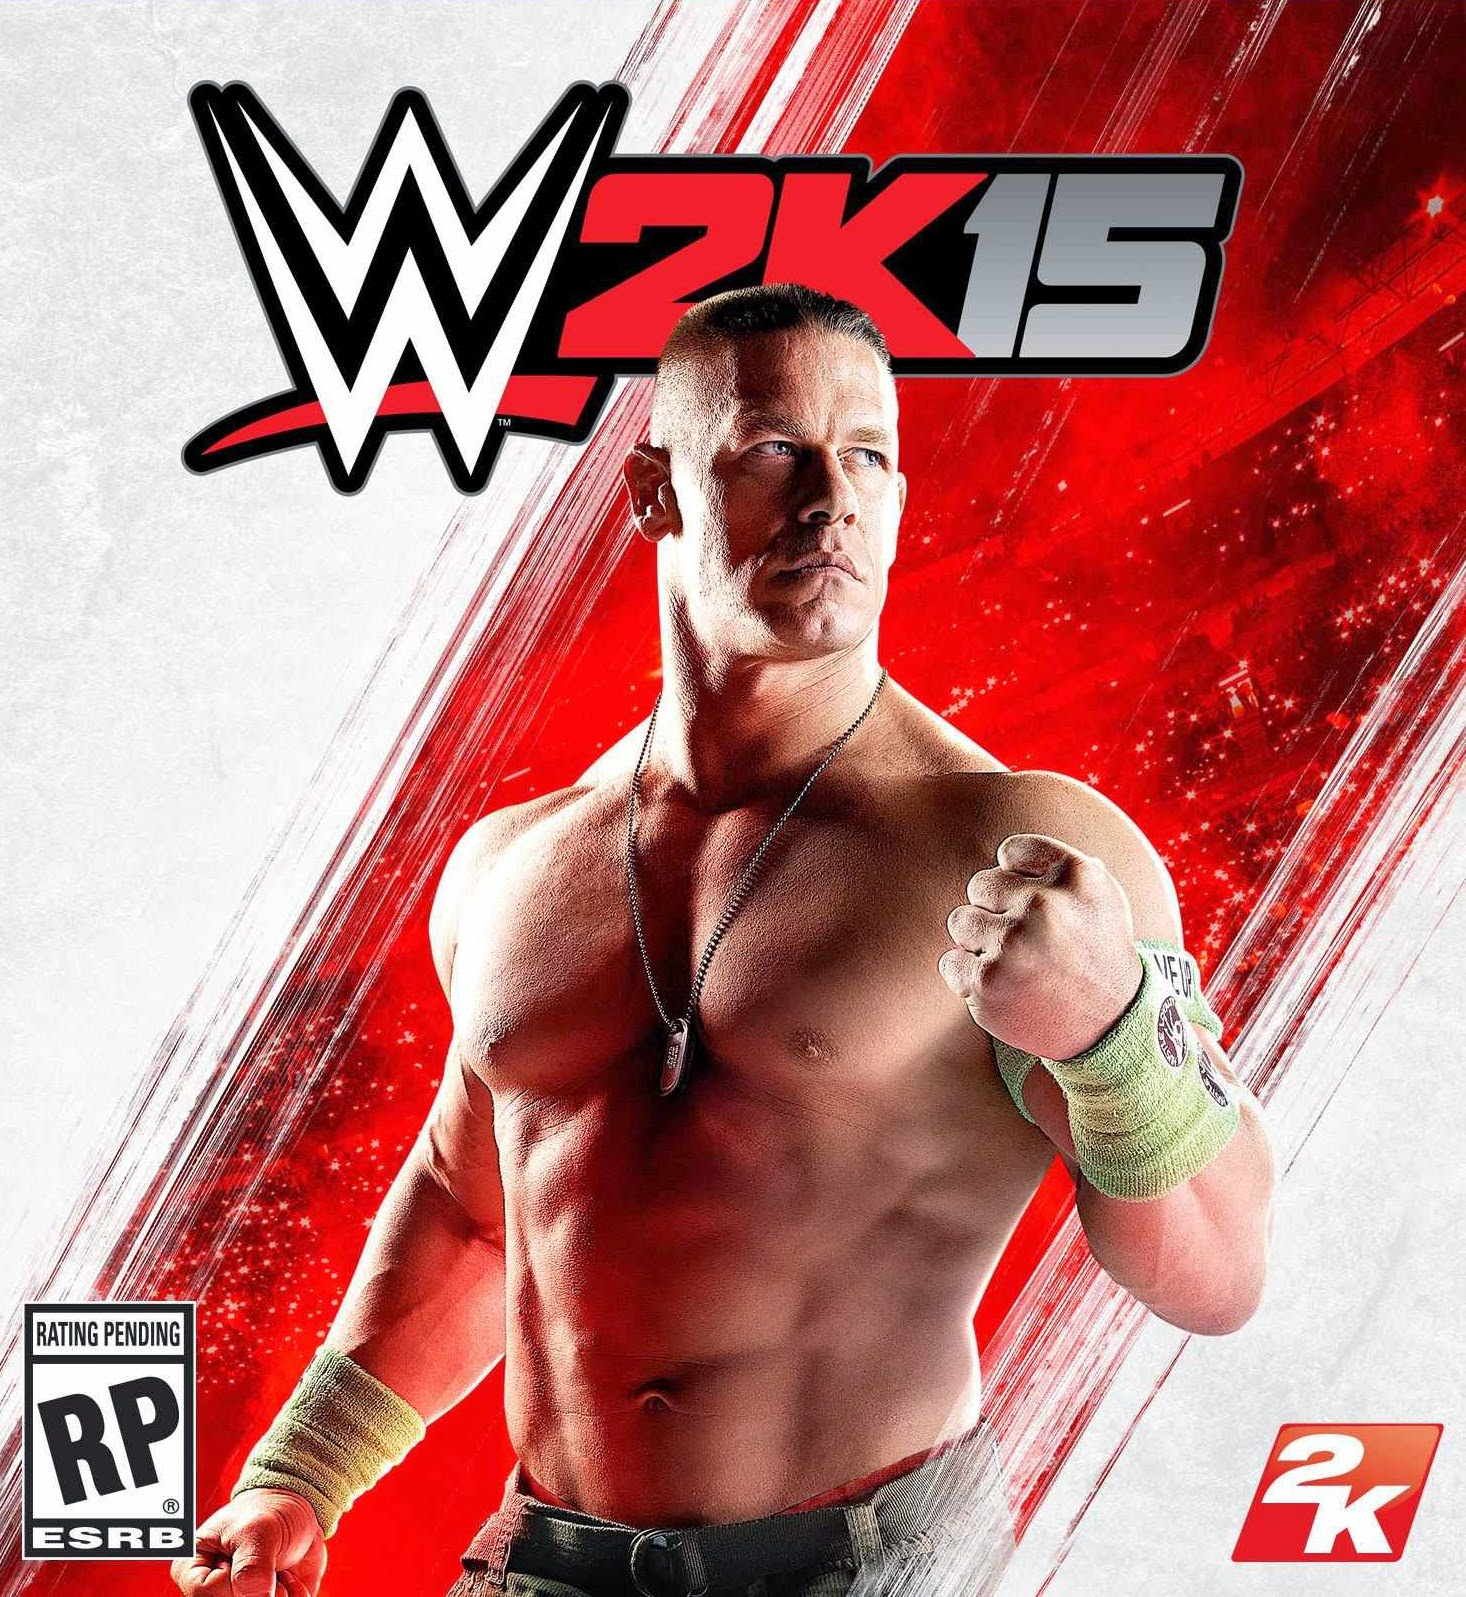 WWE 2K15 ESPAÑOL Full PC Cover Caratula